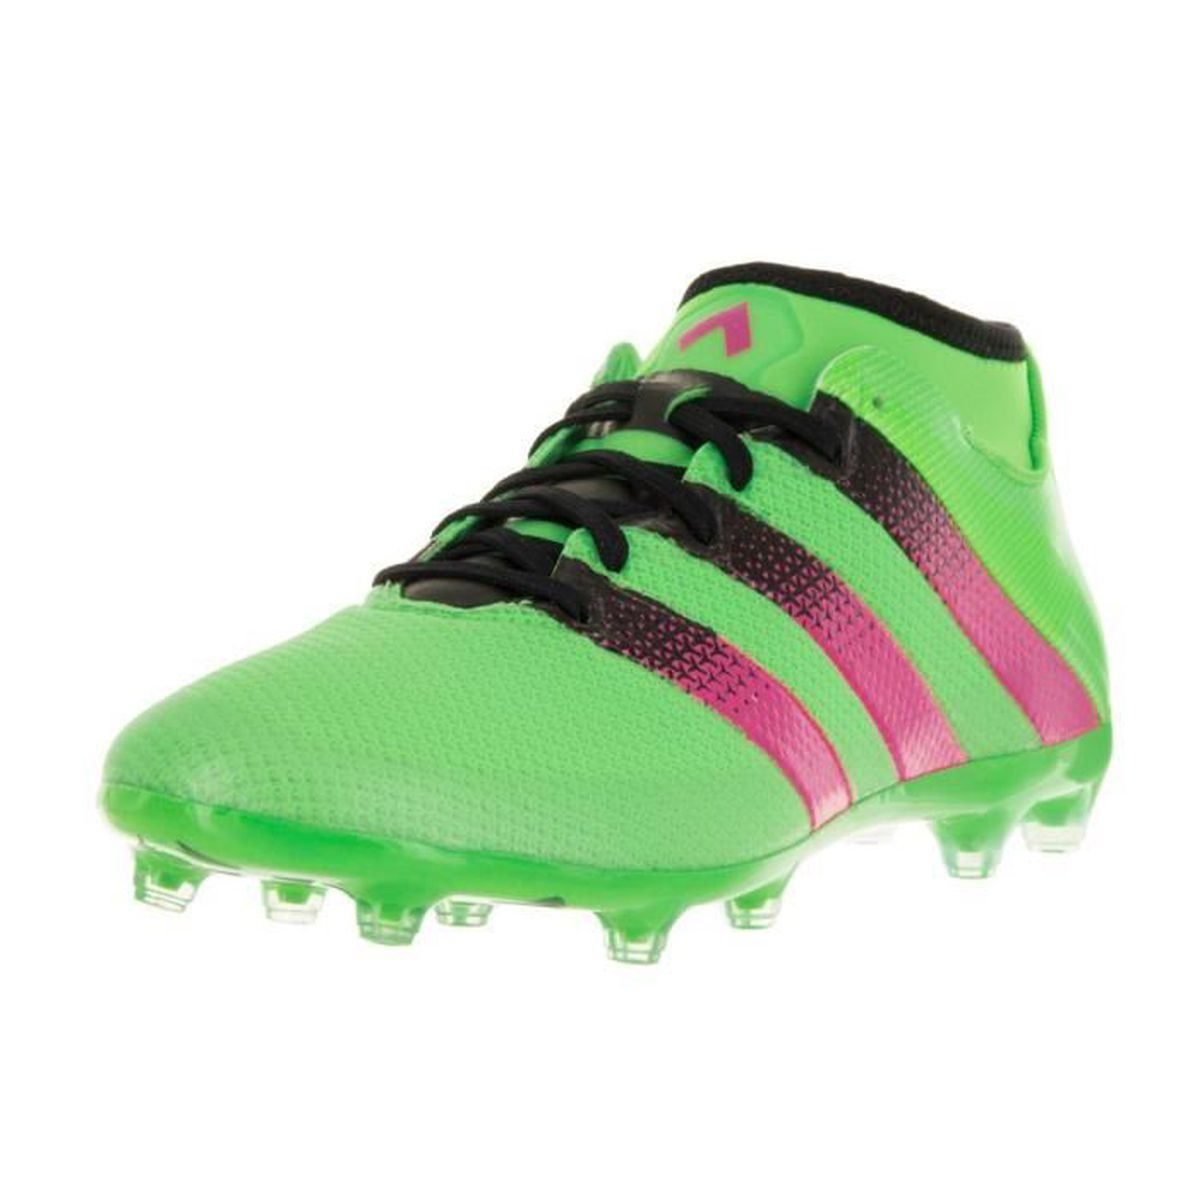 2 16 Chaussure Chaussures Primmest De Football Ace Adidas CYaqwY